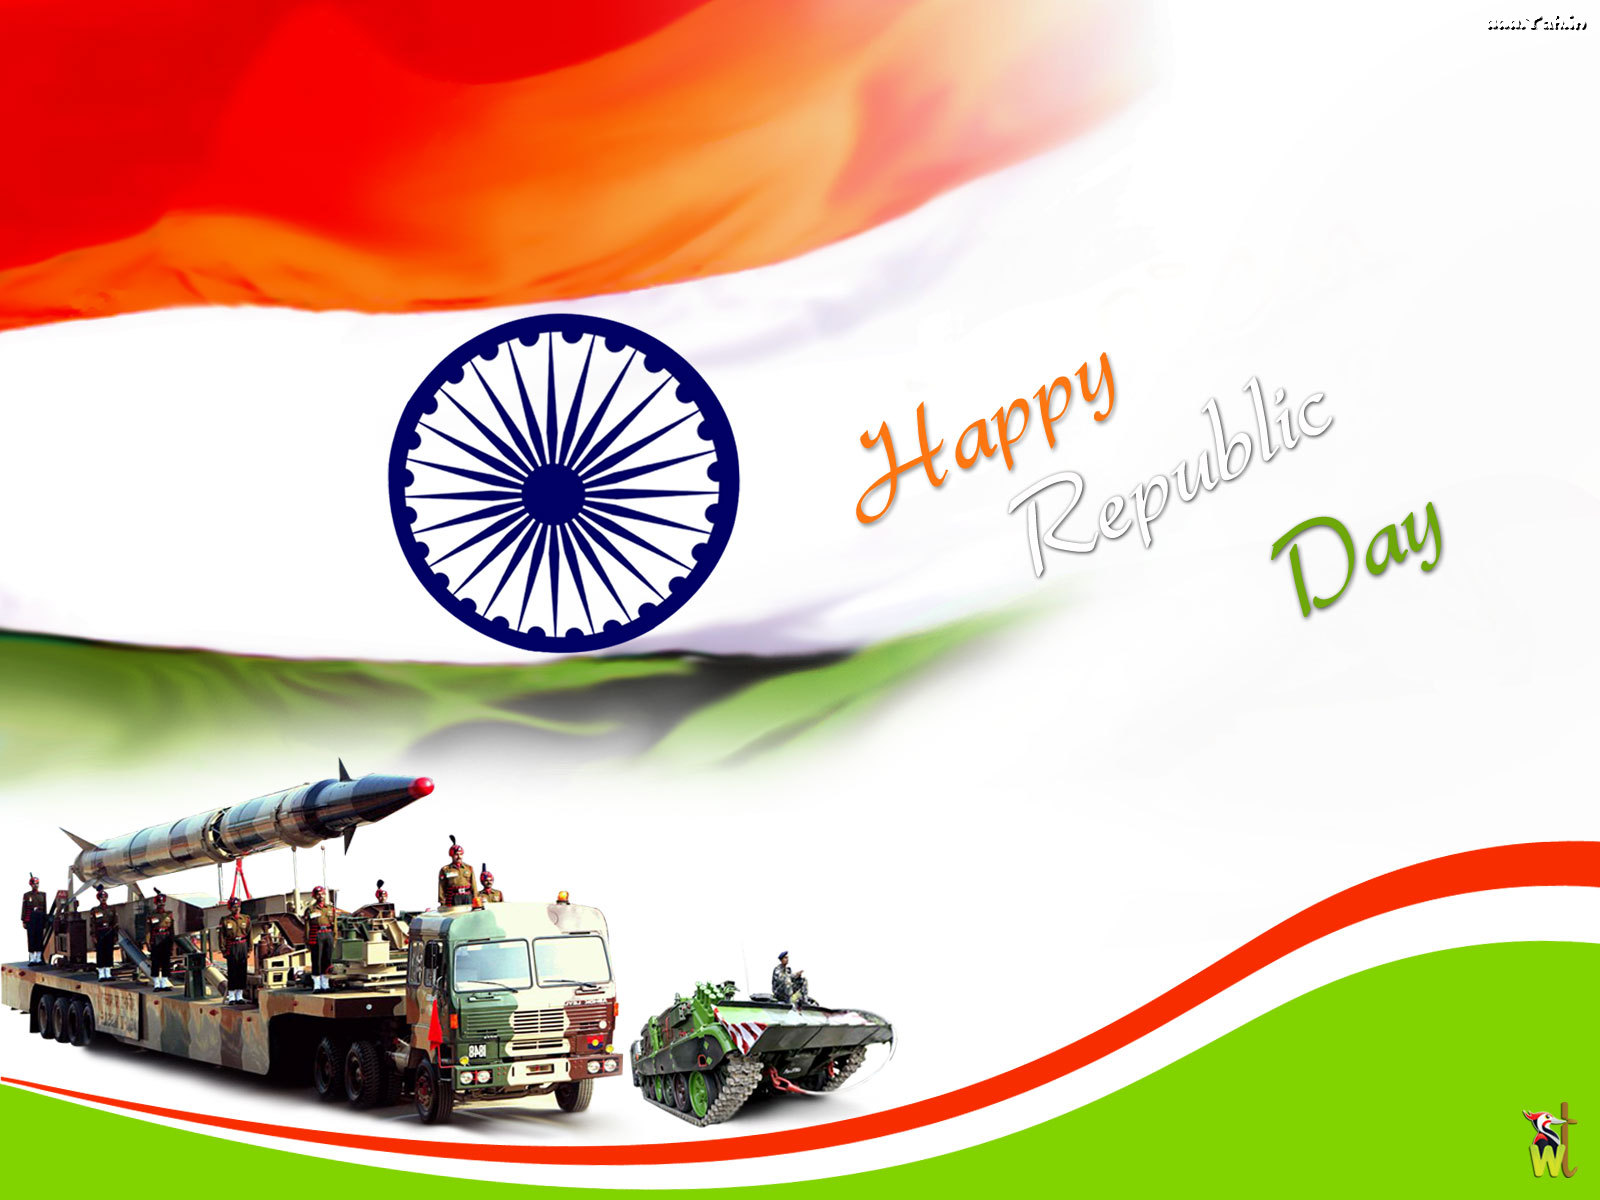 http://4.bp.blogspot.com/-yZjX--dm52g/Tw-5jgqS9YI/AAAAAAAADy4/yRE0r439_Lc/s1600/Republic-Day-Wallpapers-pics-images.jpg